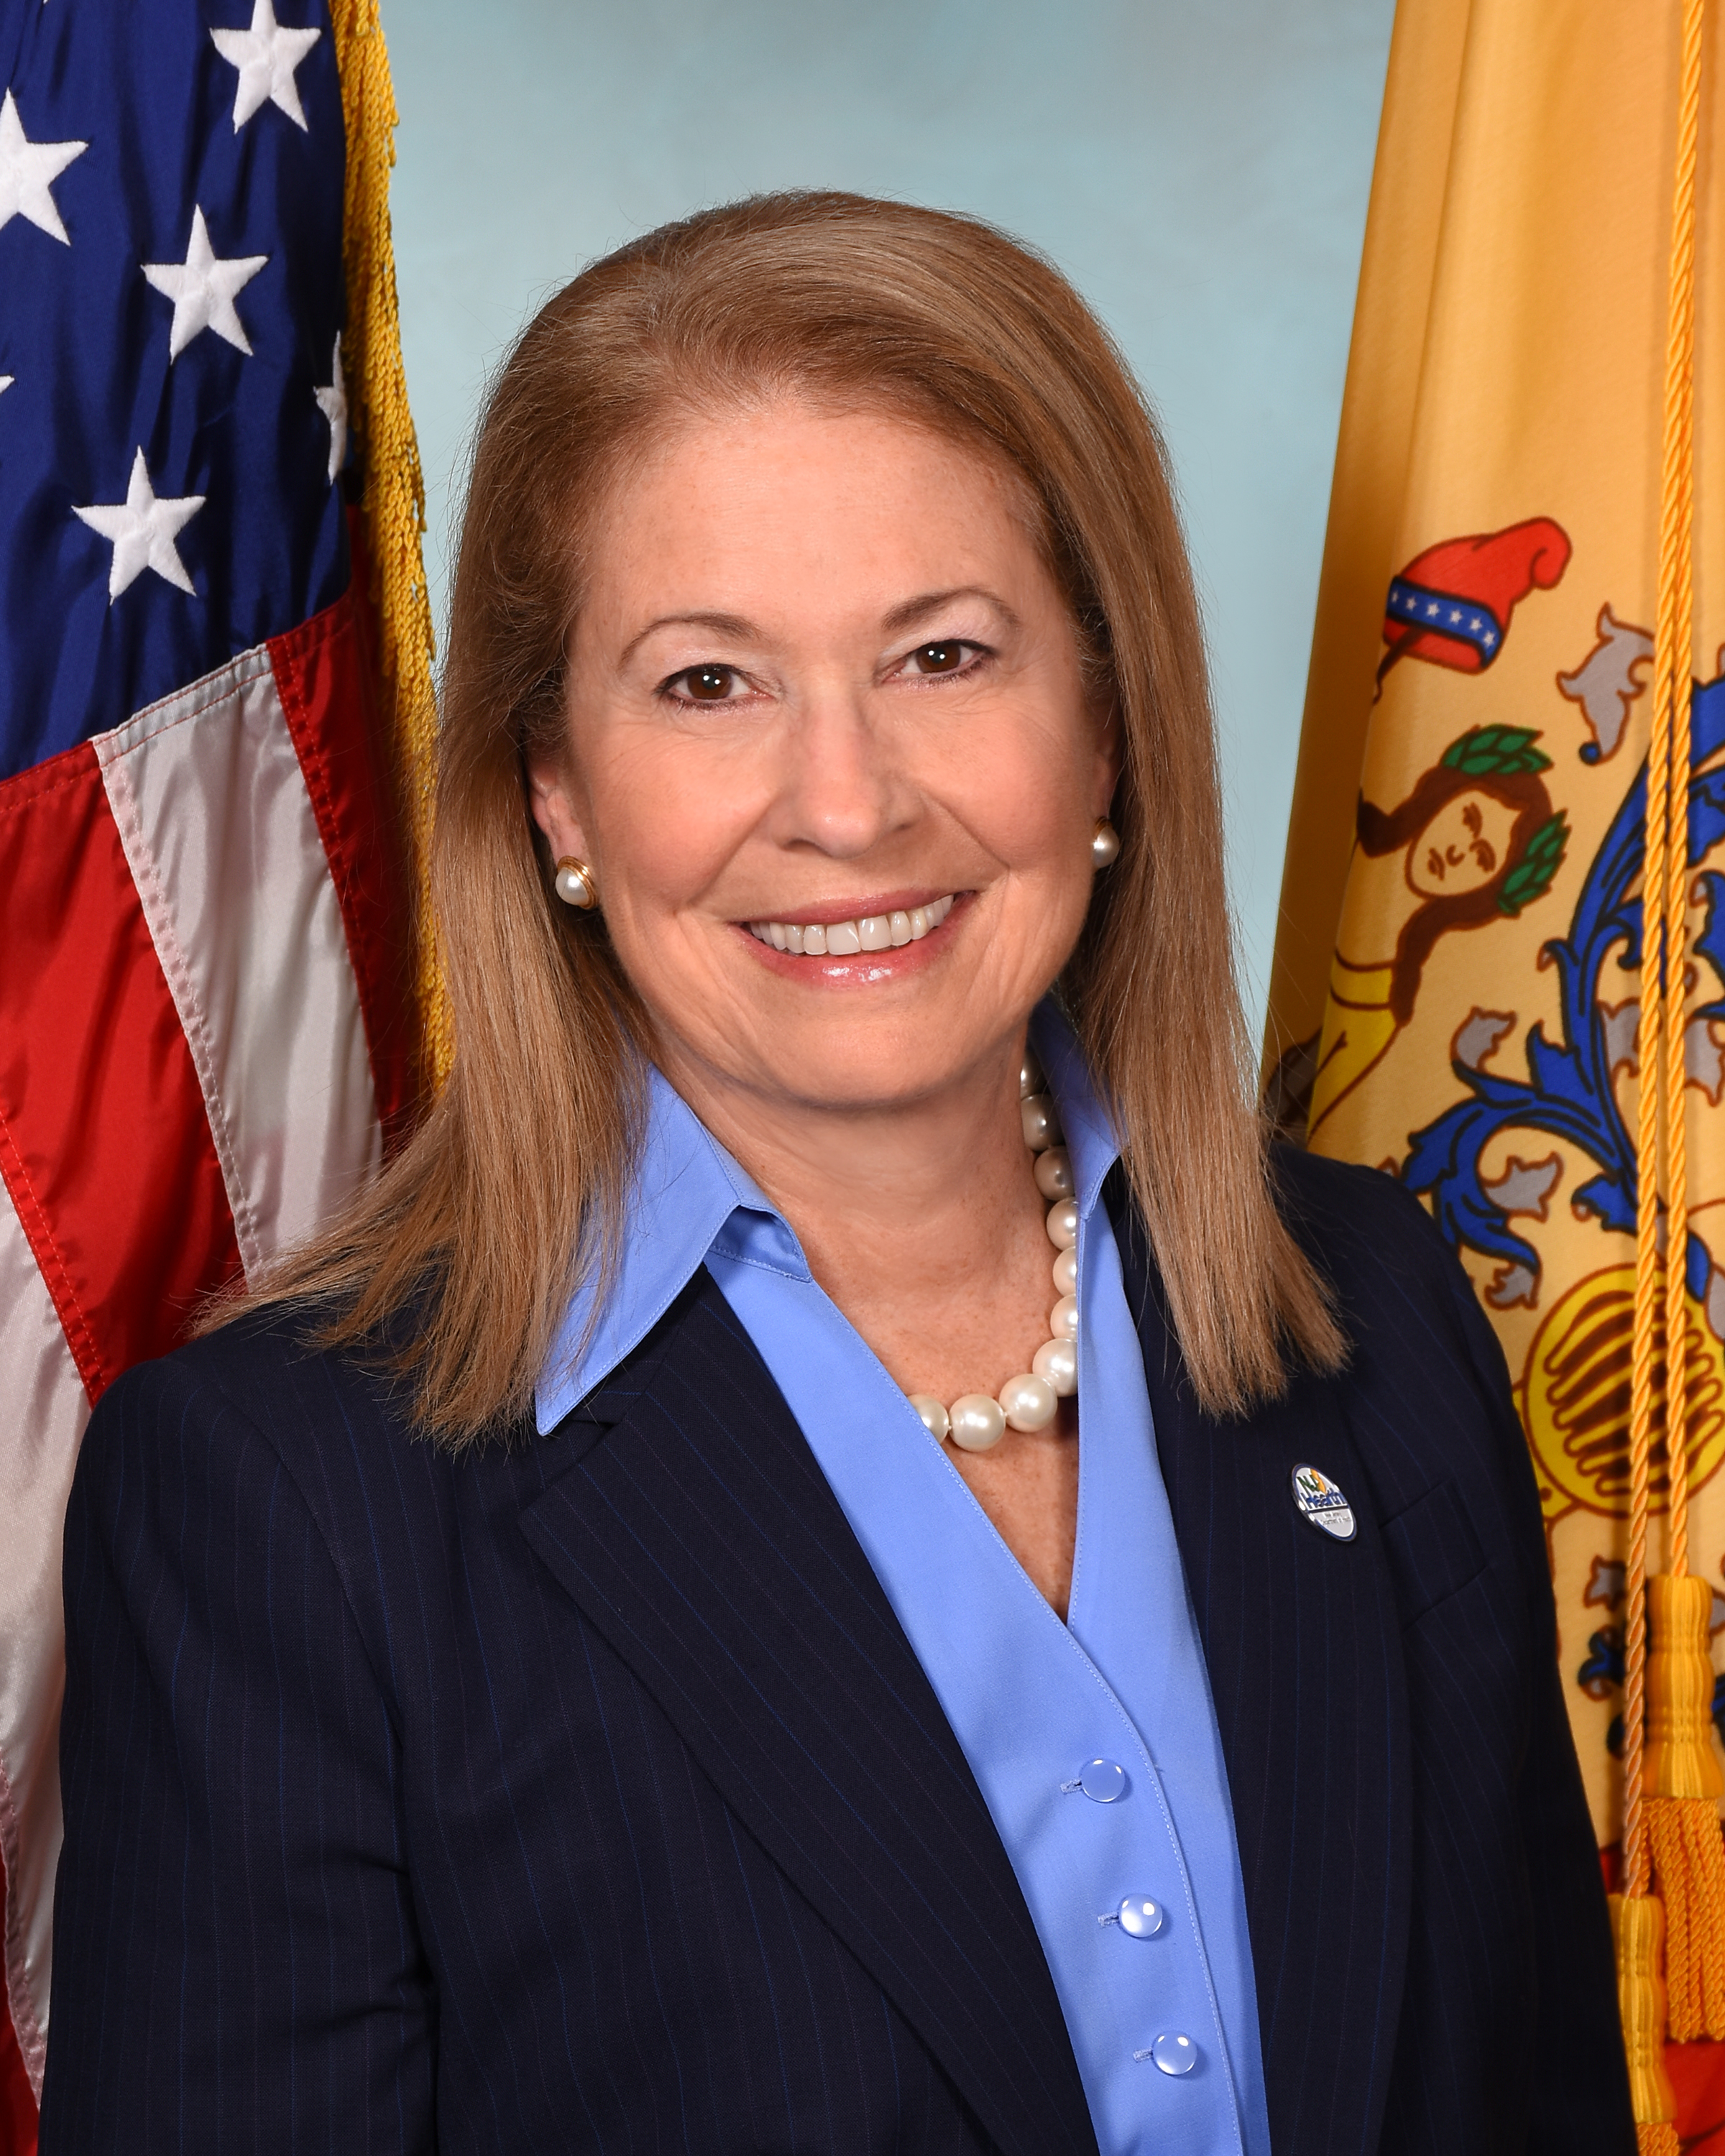 Judith M. Persichilli, R.N., B.S.N., M.A., Acting Commissioner